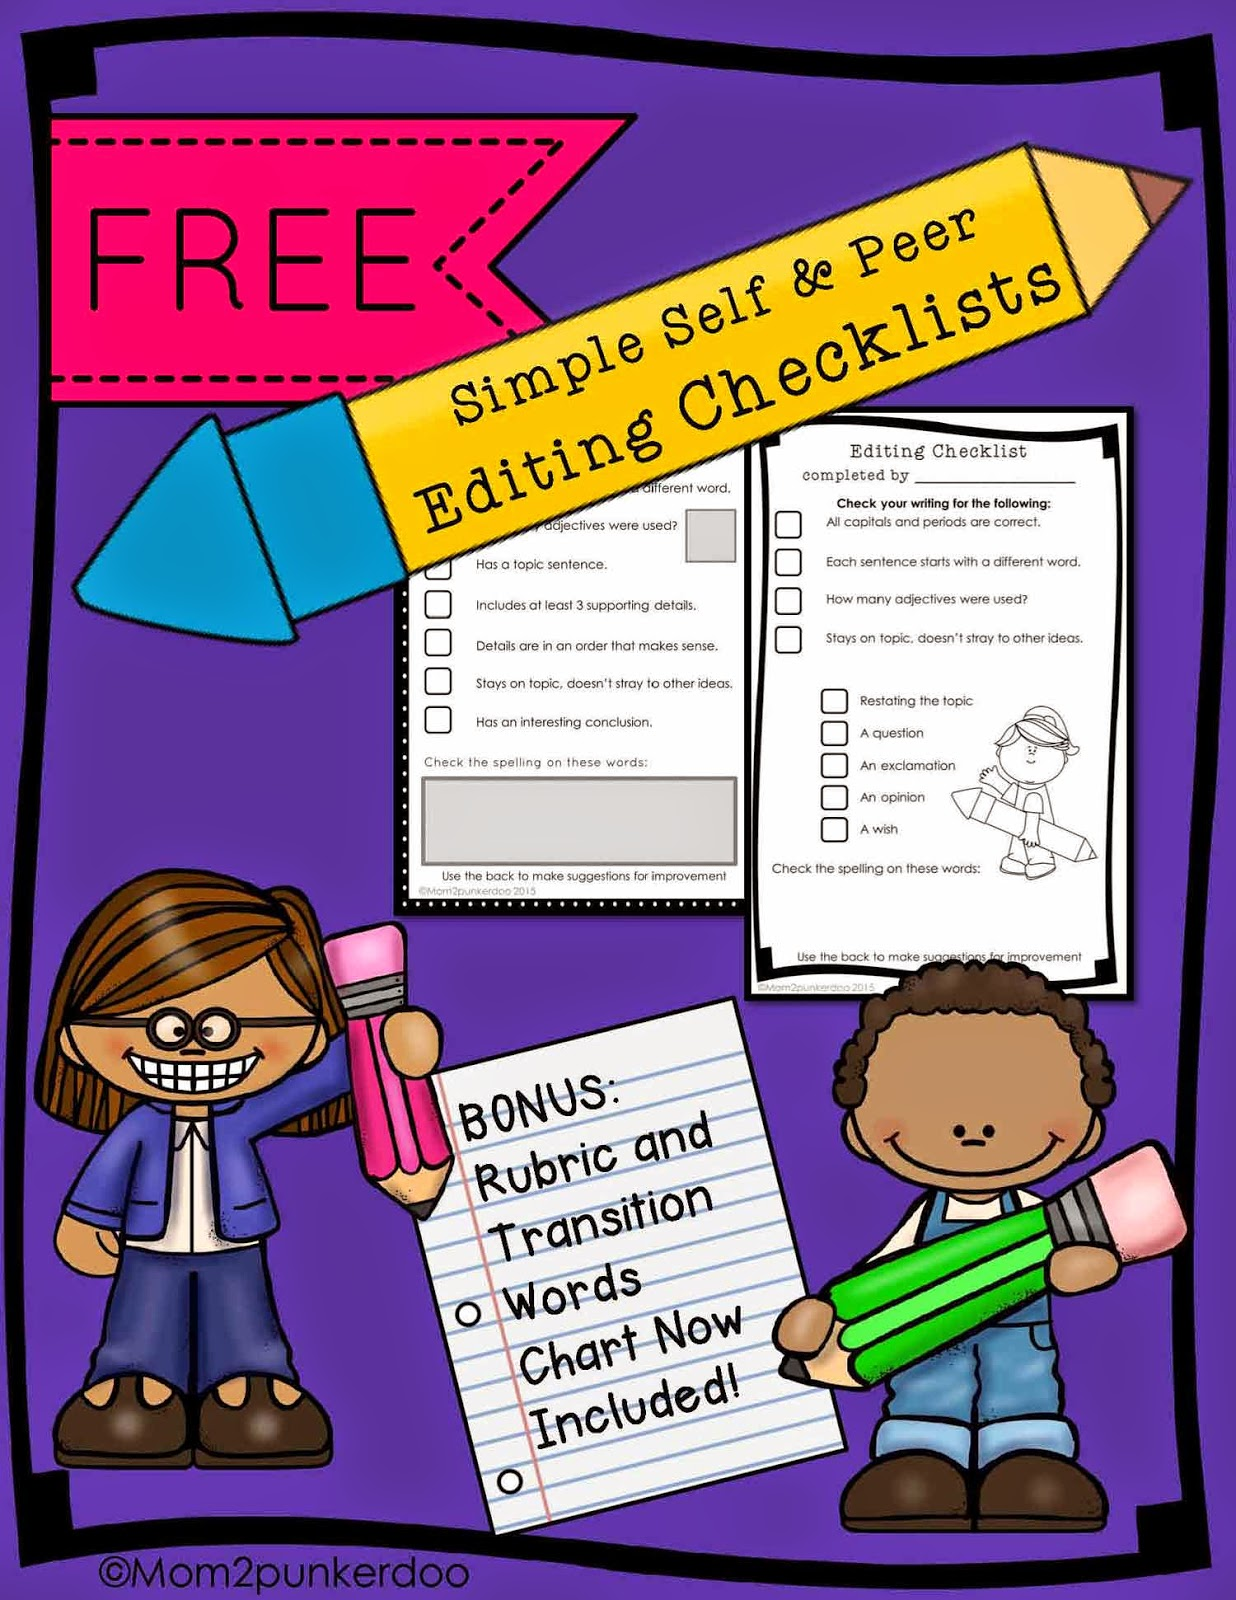 Free Editing Checklist and Rubric